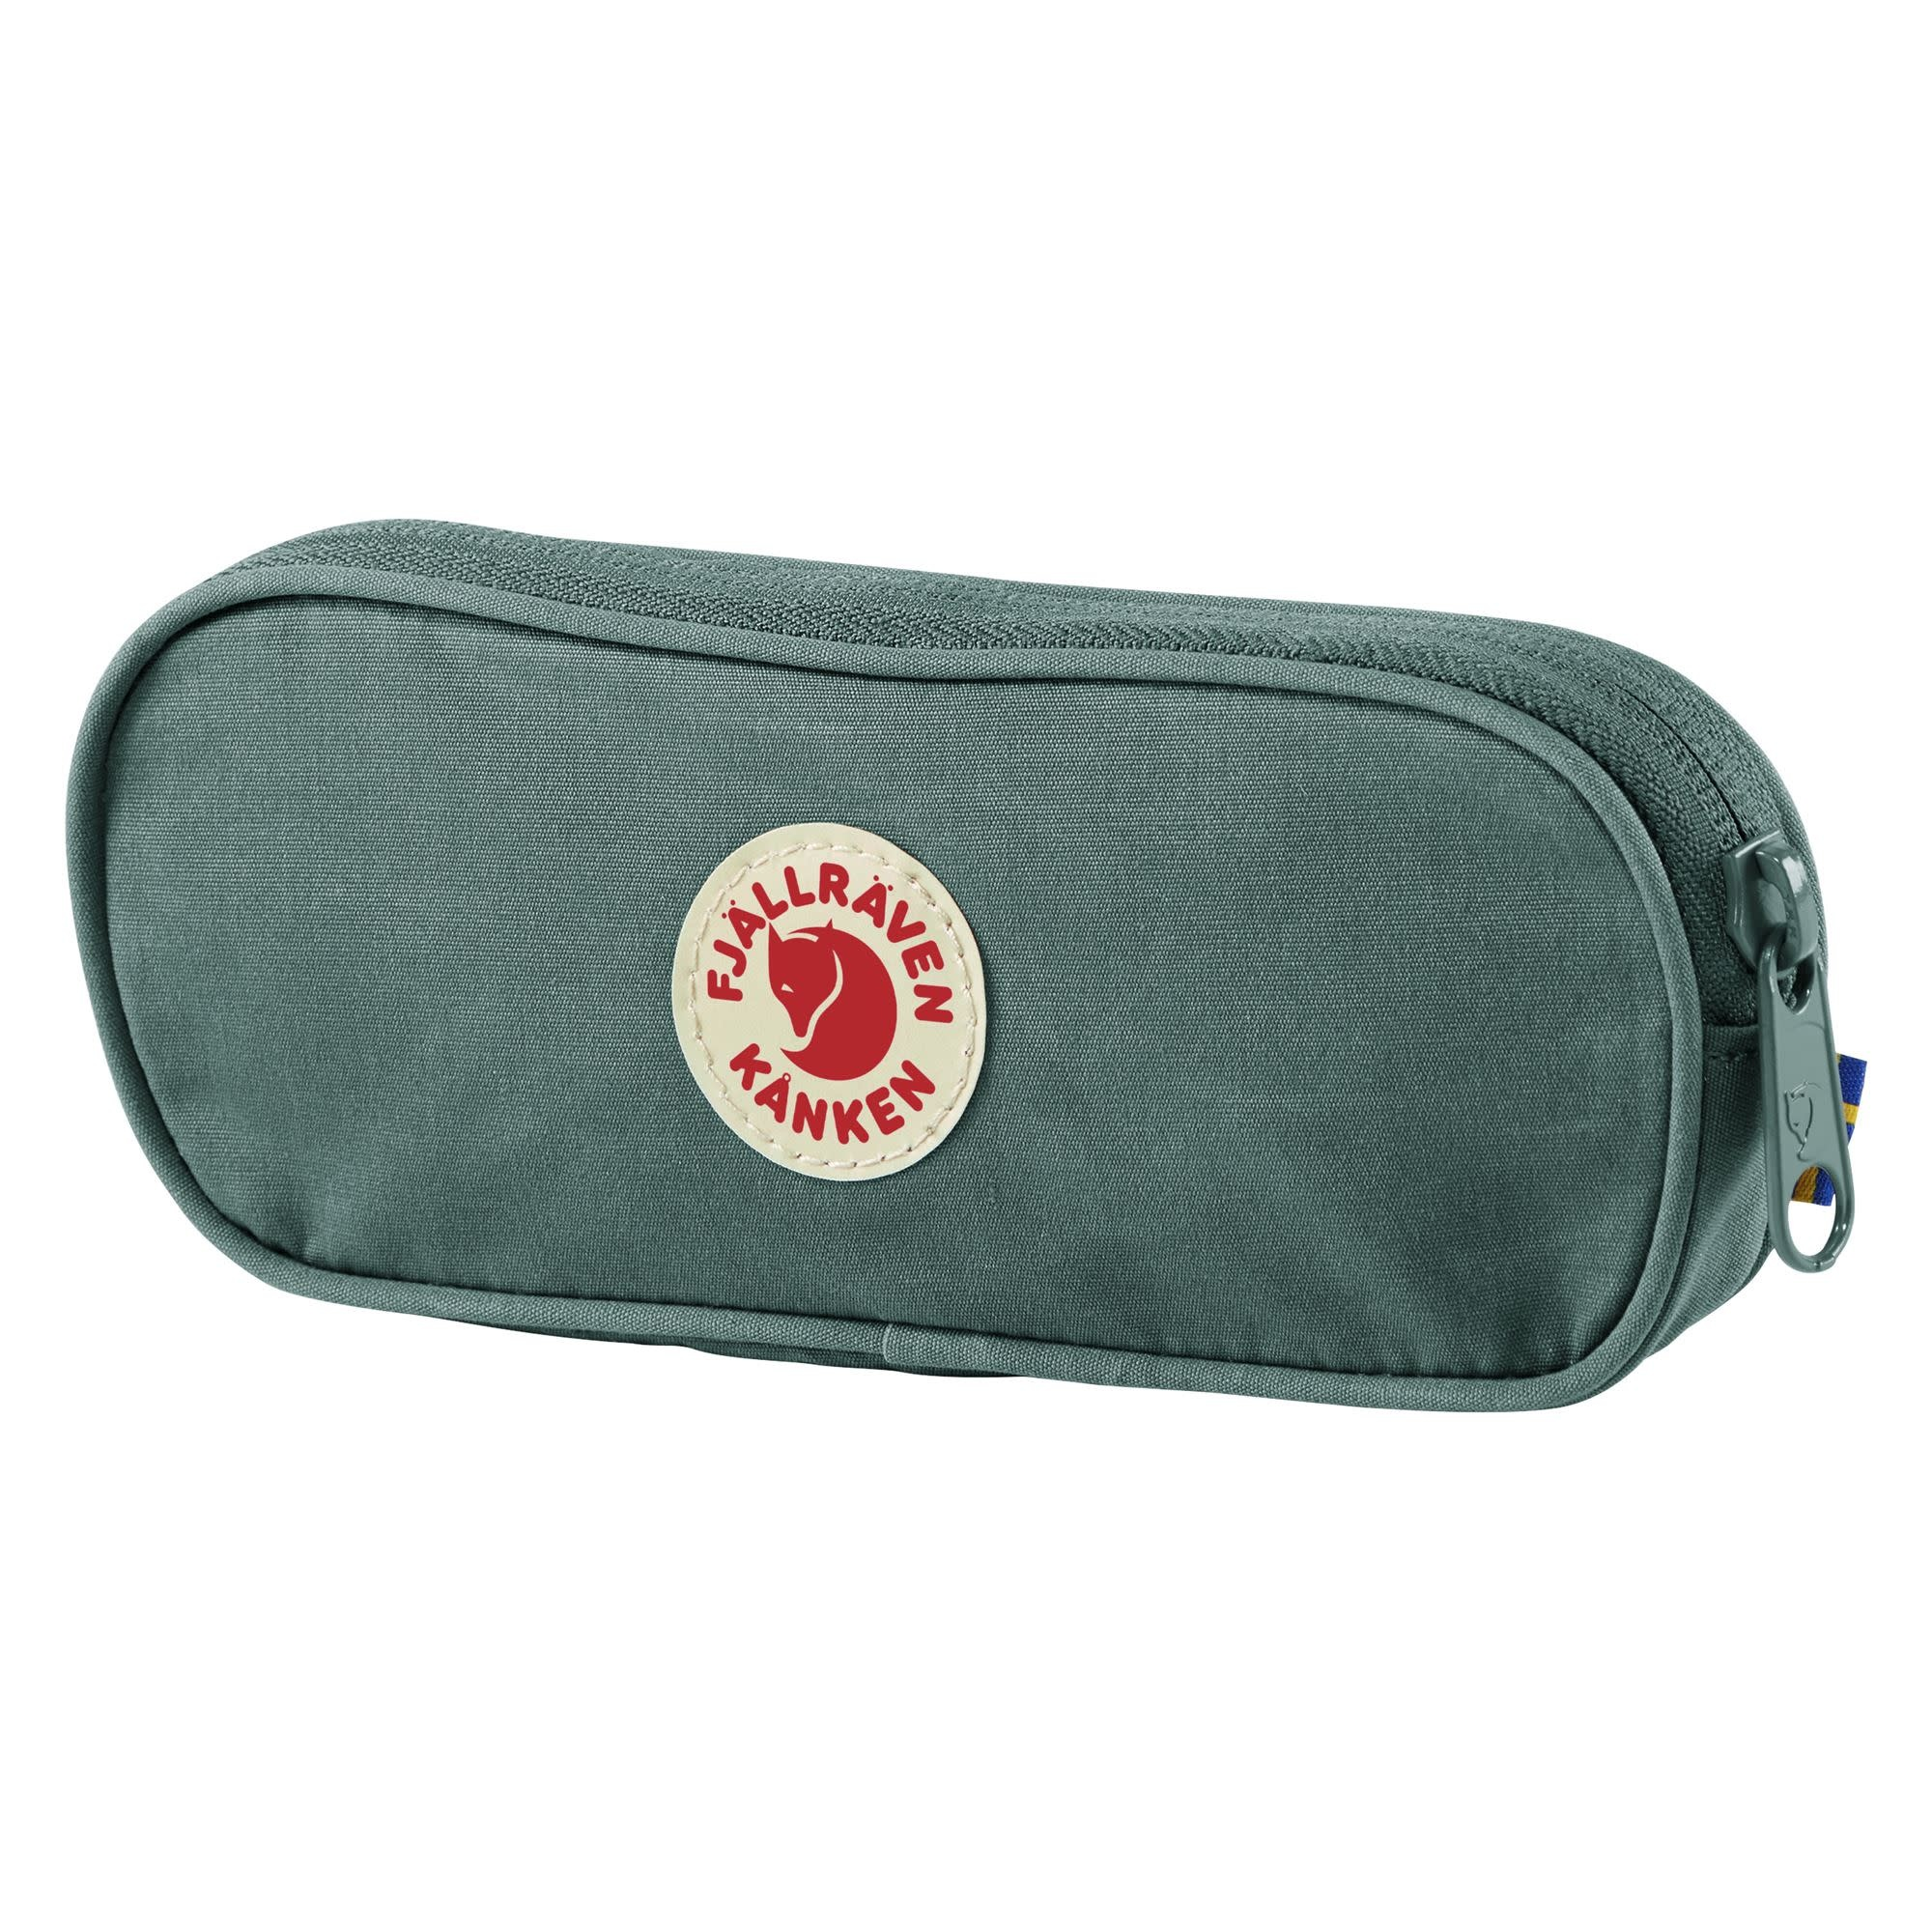 Fjallraven Kanken Pen Case - Frost Green